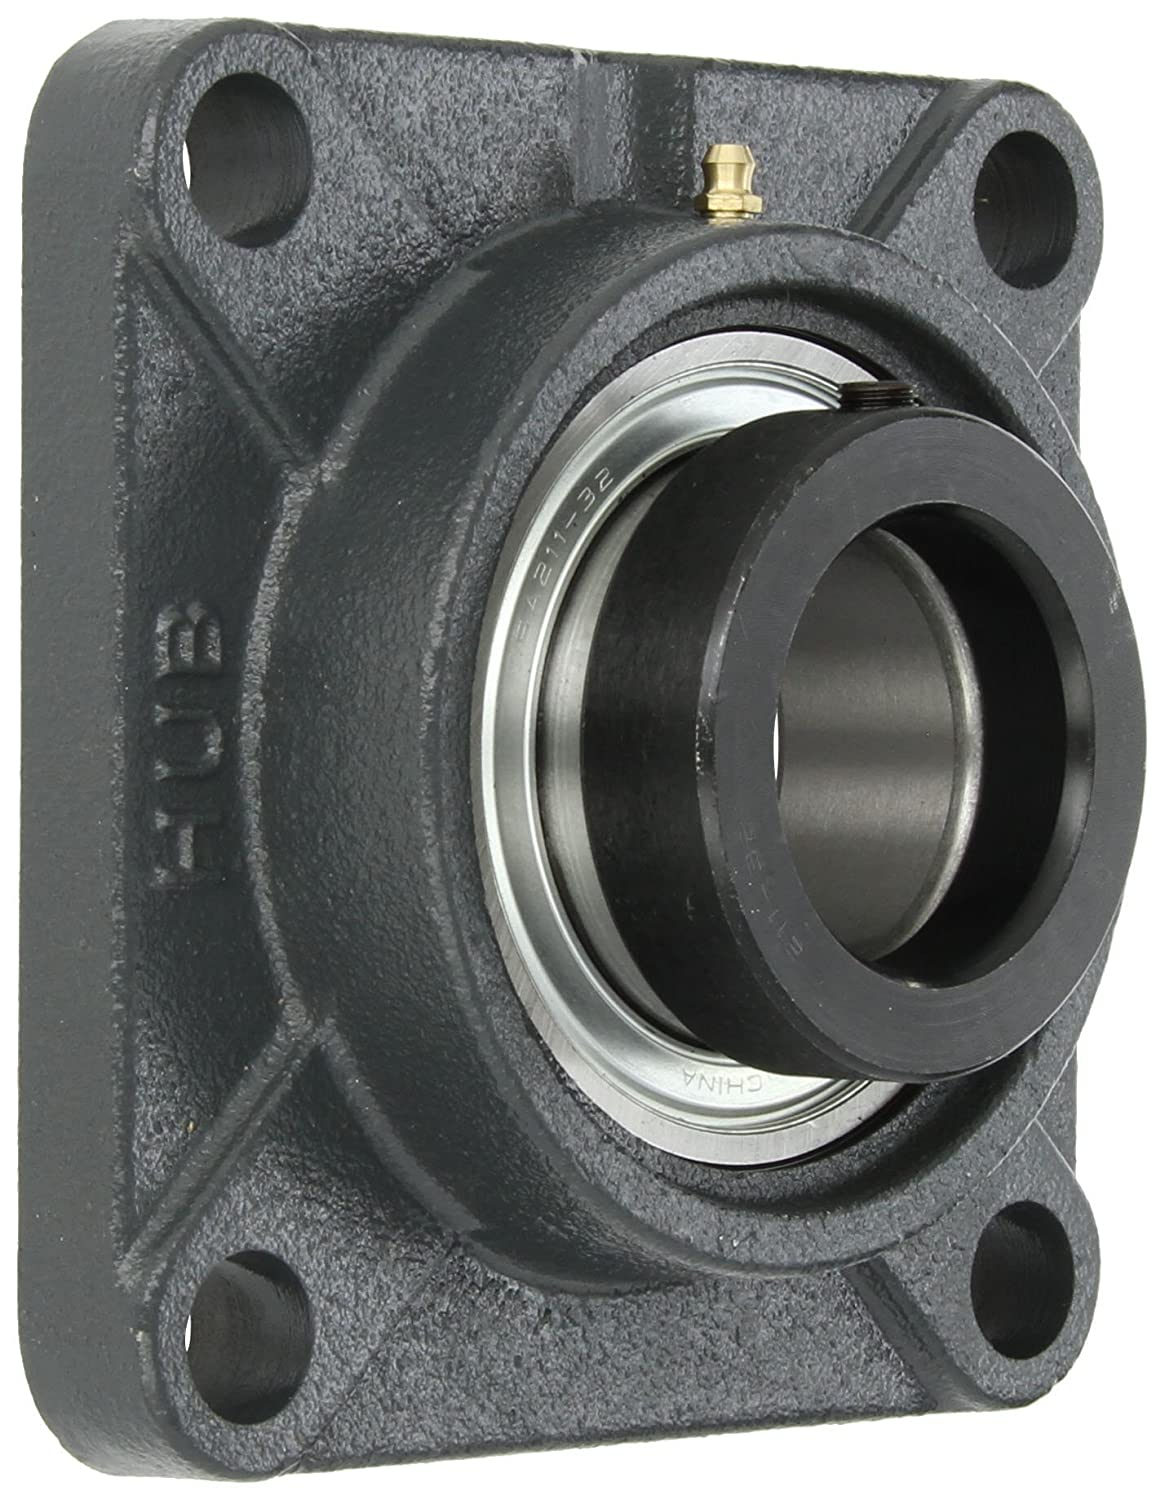 Hub City FB220URX2 Flange Block Mounted Bearing, 4 Bolt, Normal Duty, Relube, Eccentric Locking Collar, Narrow Inner Race, Cast Iron Housing, 2' Bore, 2.476' Length Through Bore, 5.118' Mounting Hole Spacing 2 Bore 2.476 Length Through Bore